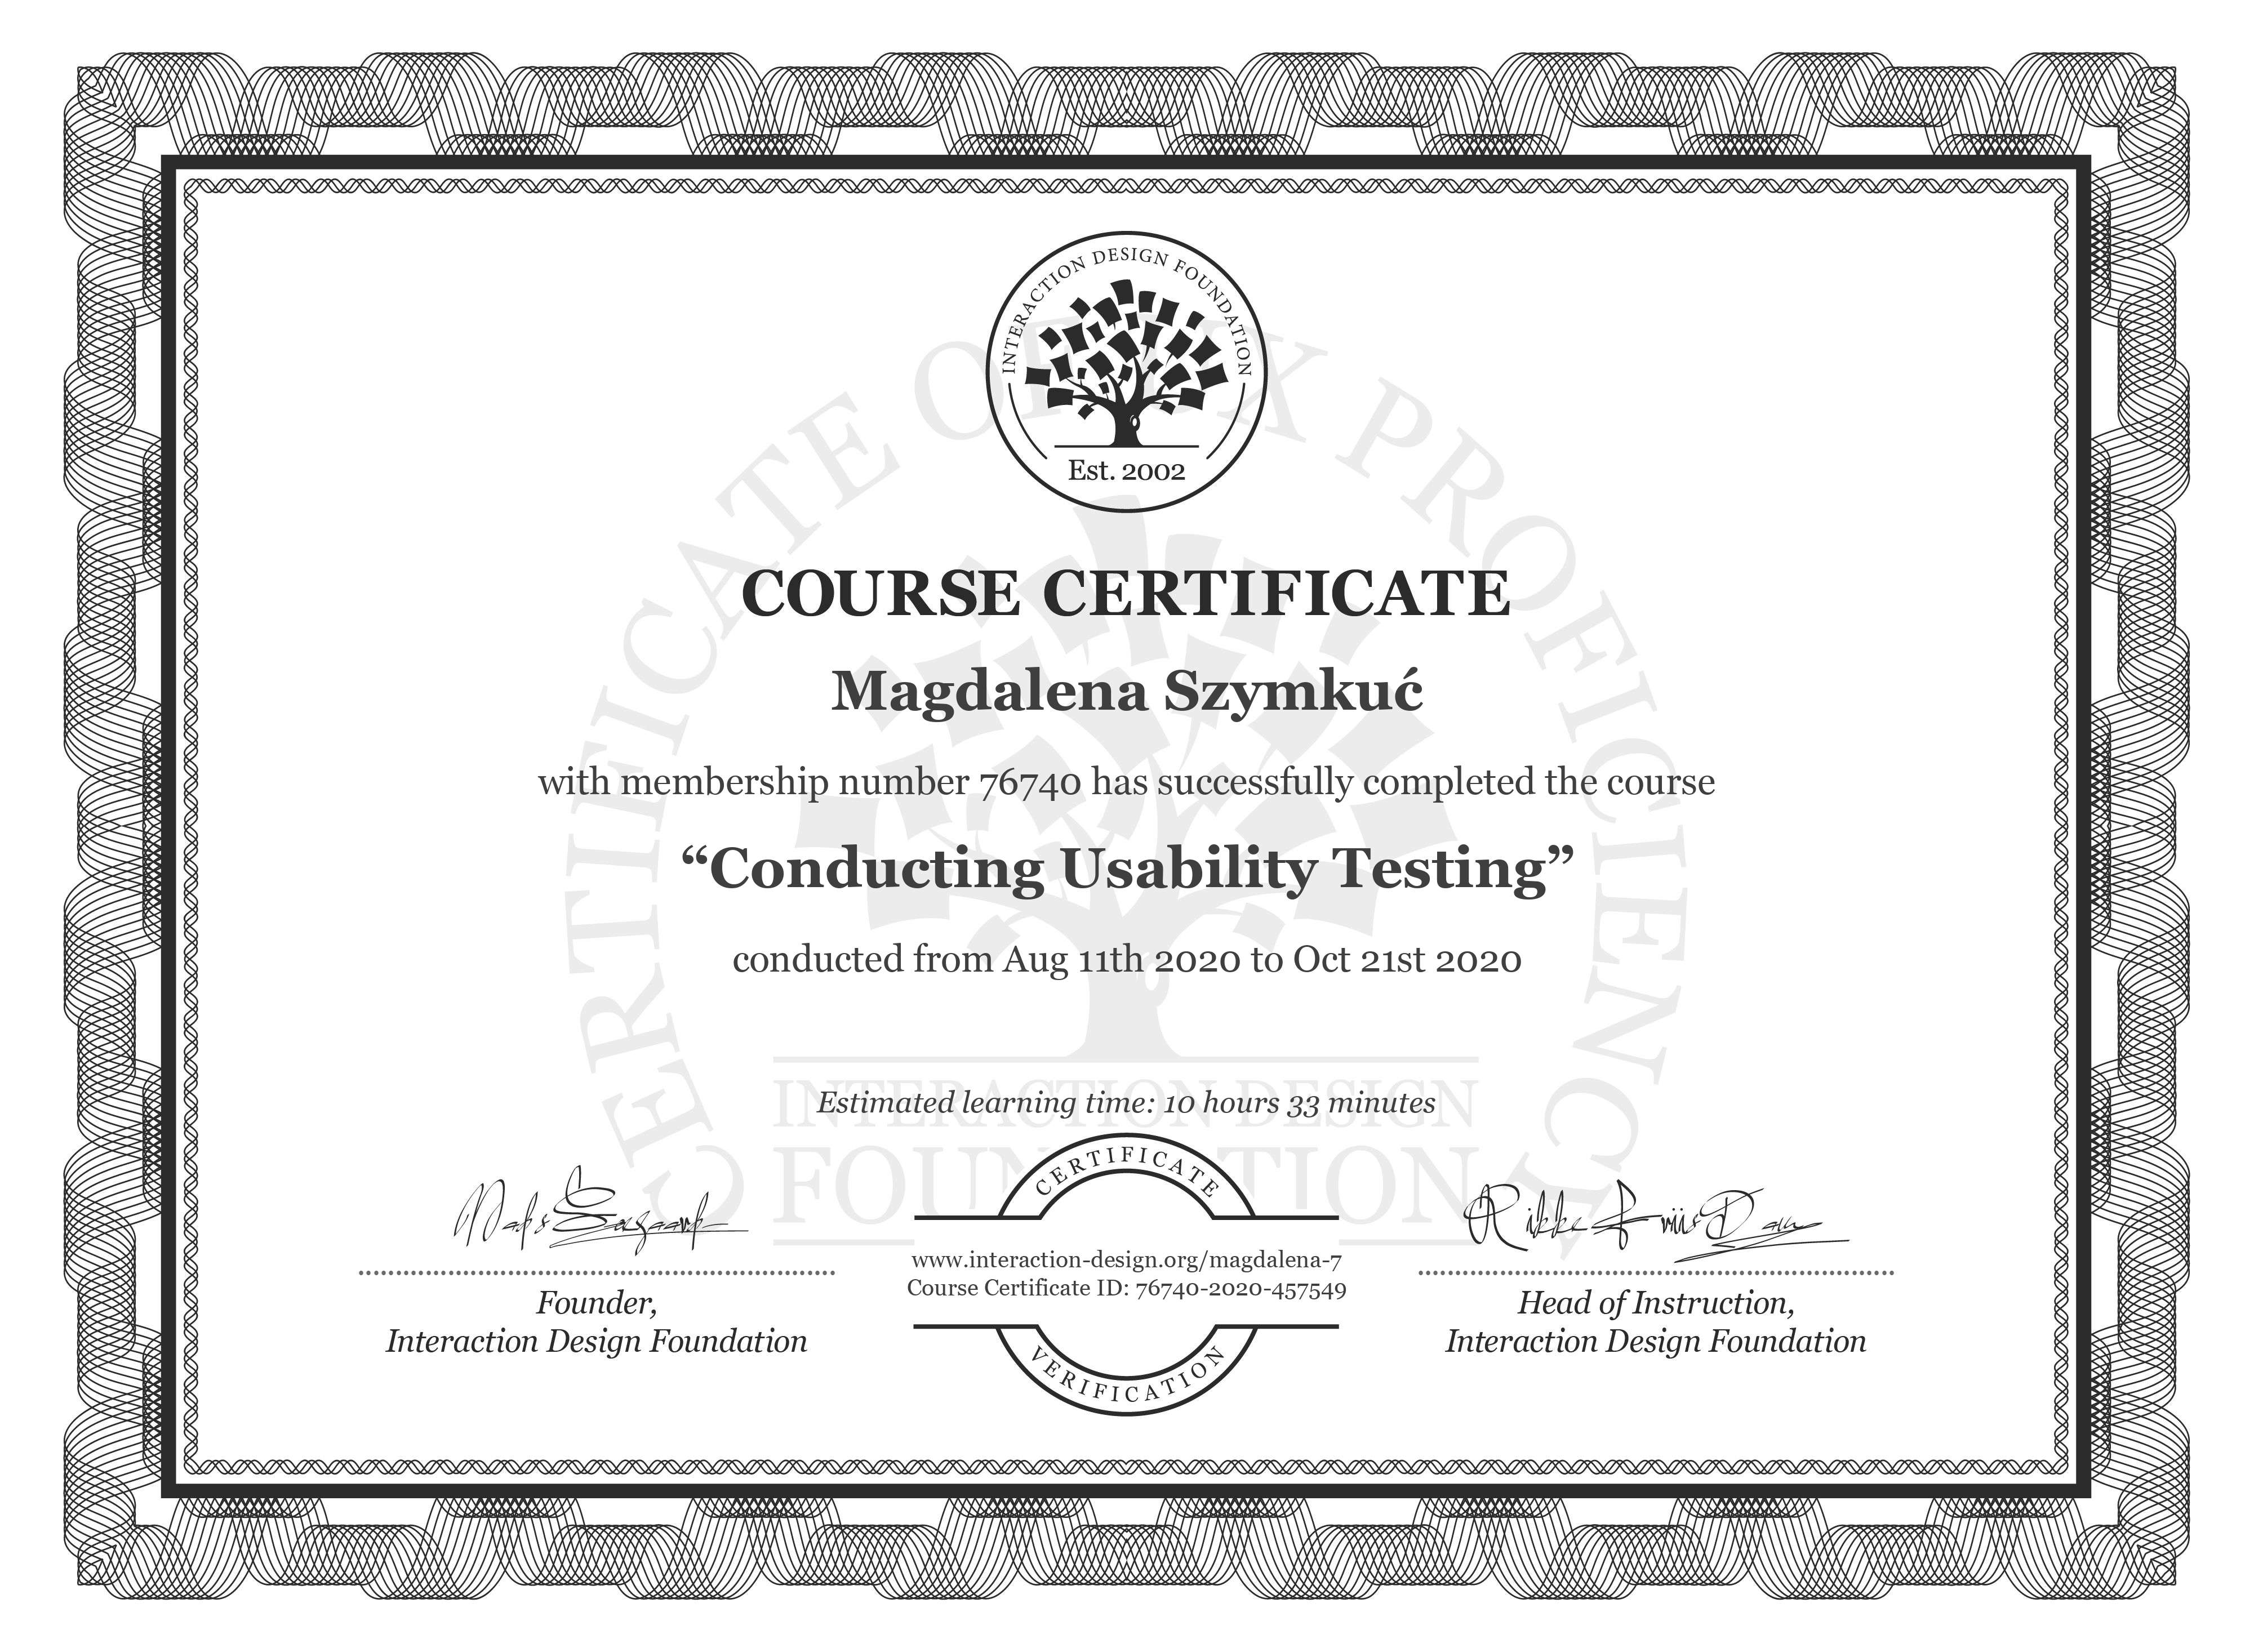 Magdalena Szymkuć's Course Certificate: Conducting Usability Testing